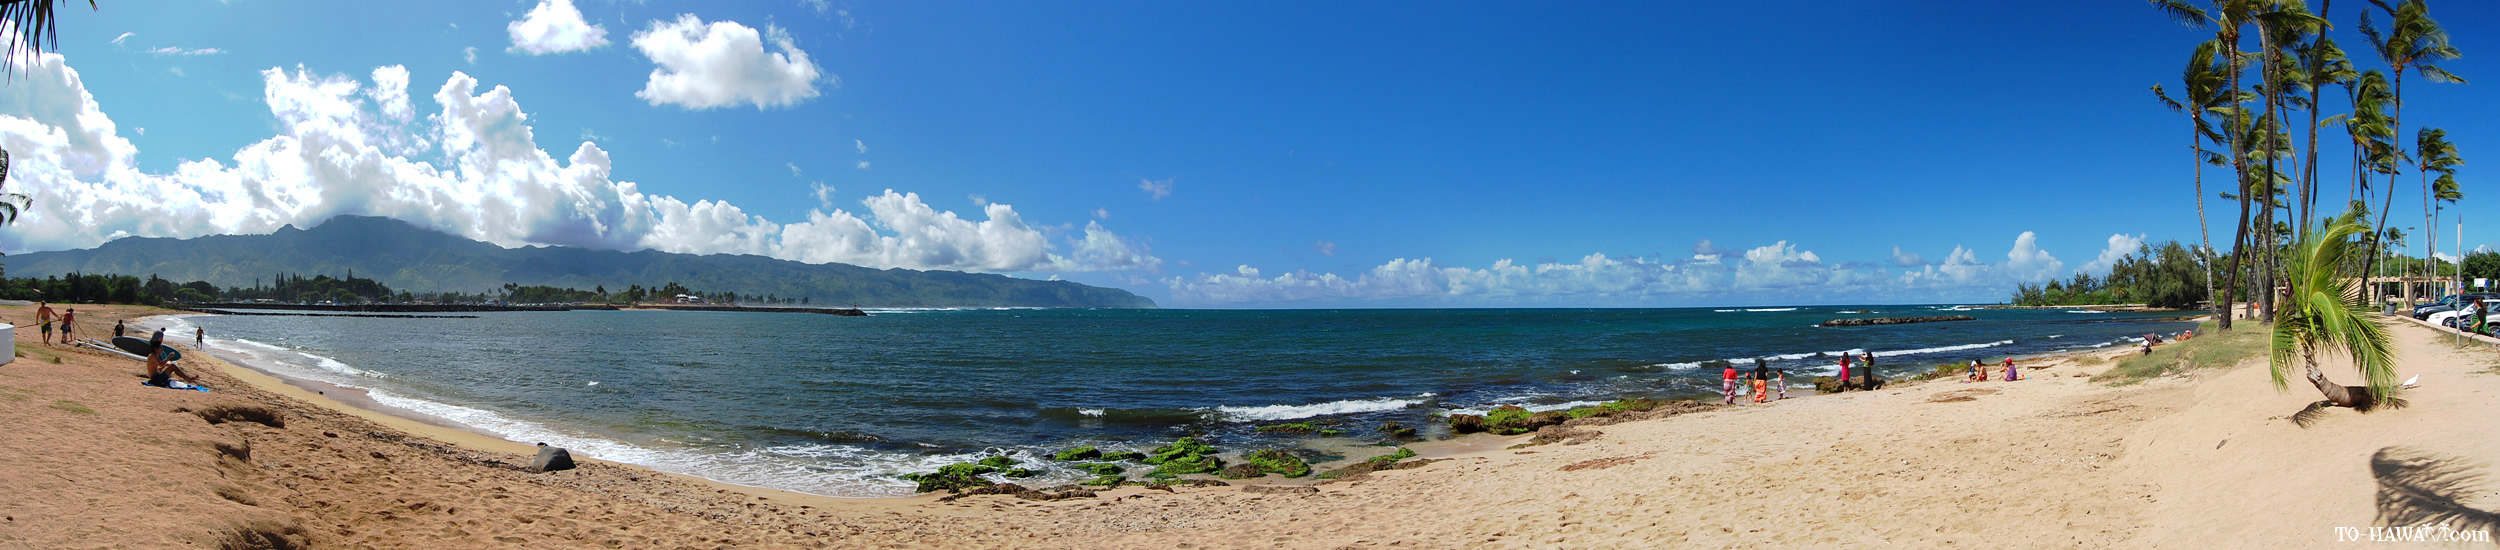 Hawaii  >> Index of /oahu/beaches/images/haleiwabeach2/pano